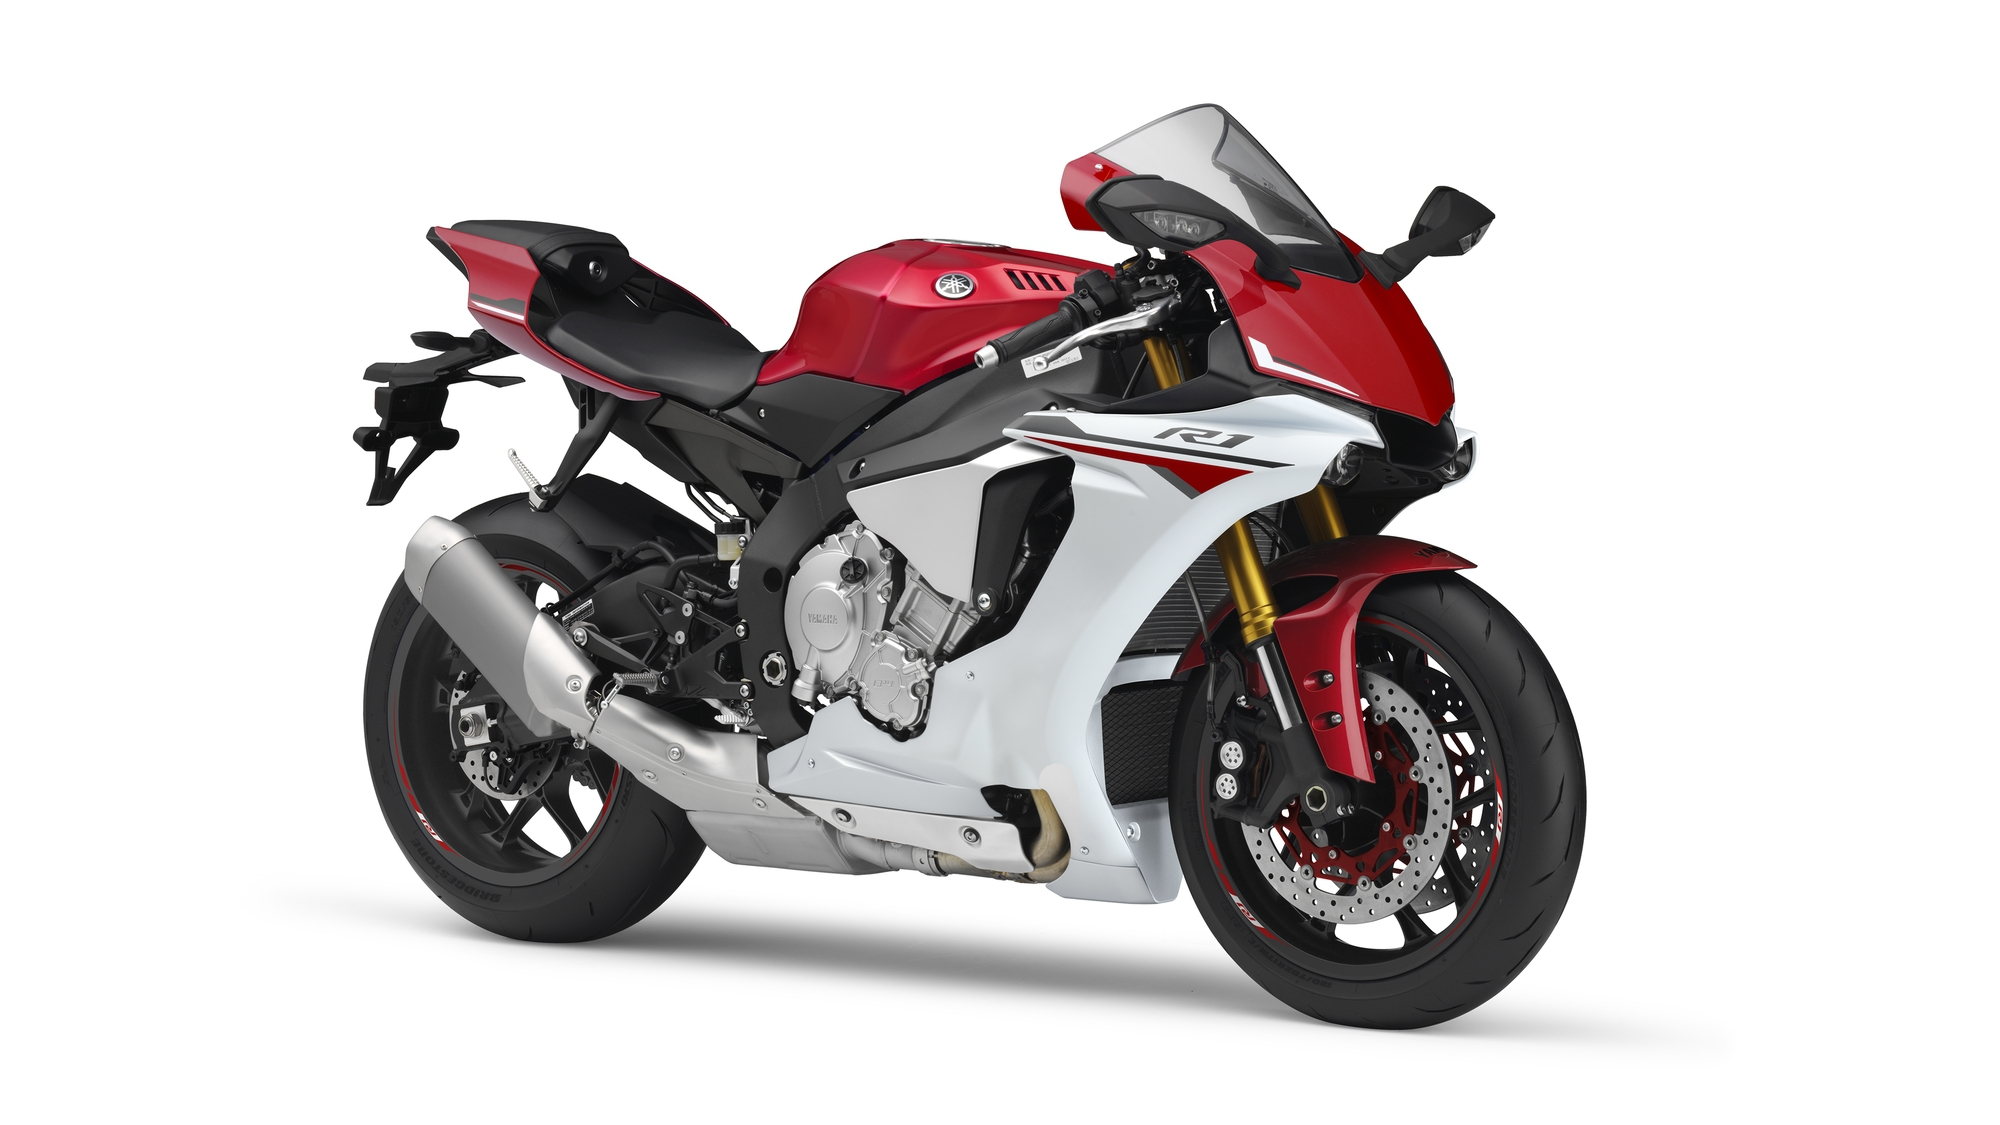 2015 yamaha yzf r1 studio and action shots show more superbike goodness autoevolution. Black Bedroom Furniture Sets. Home Design Ideas